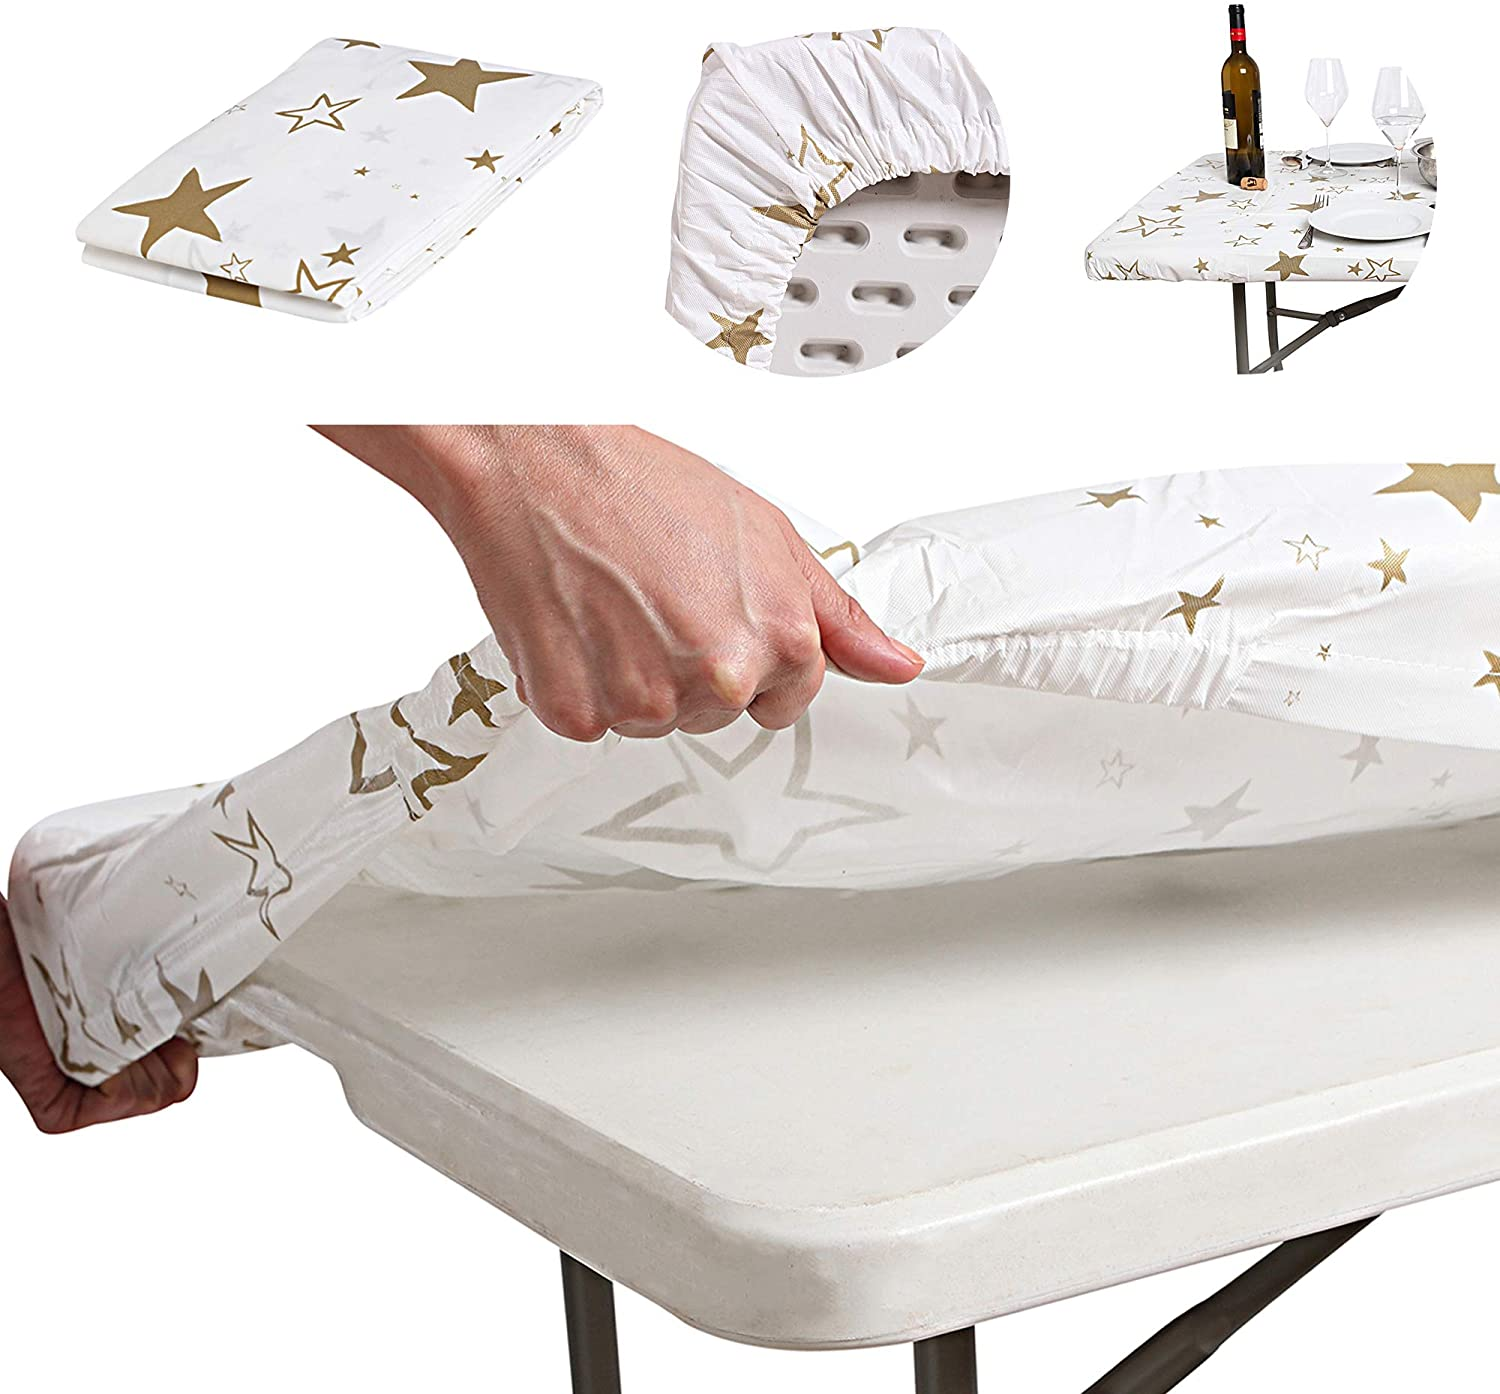 AtkEssentialProducts Waterproof Plastic Vinyl Tablecloth Elastic Edged Rectangular Fitted Picnic Cover Outdoor tablecloths Rectangle Tables Home Indoor Fits 8 ft 32x96 Folding Table Gold Patterned